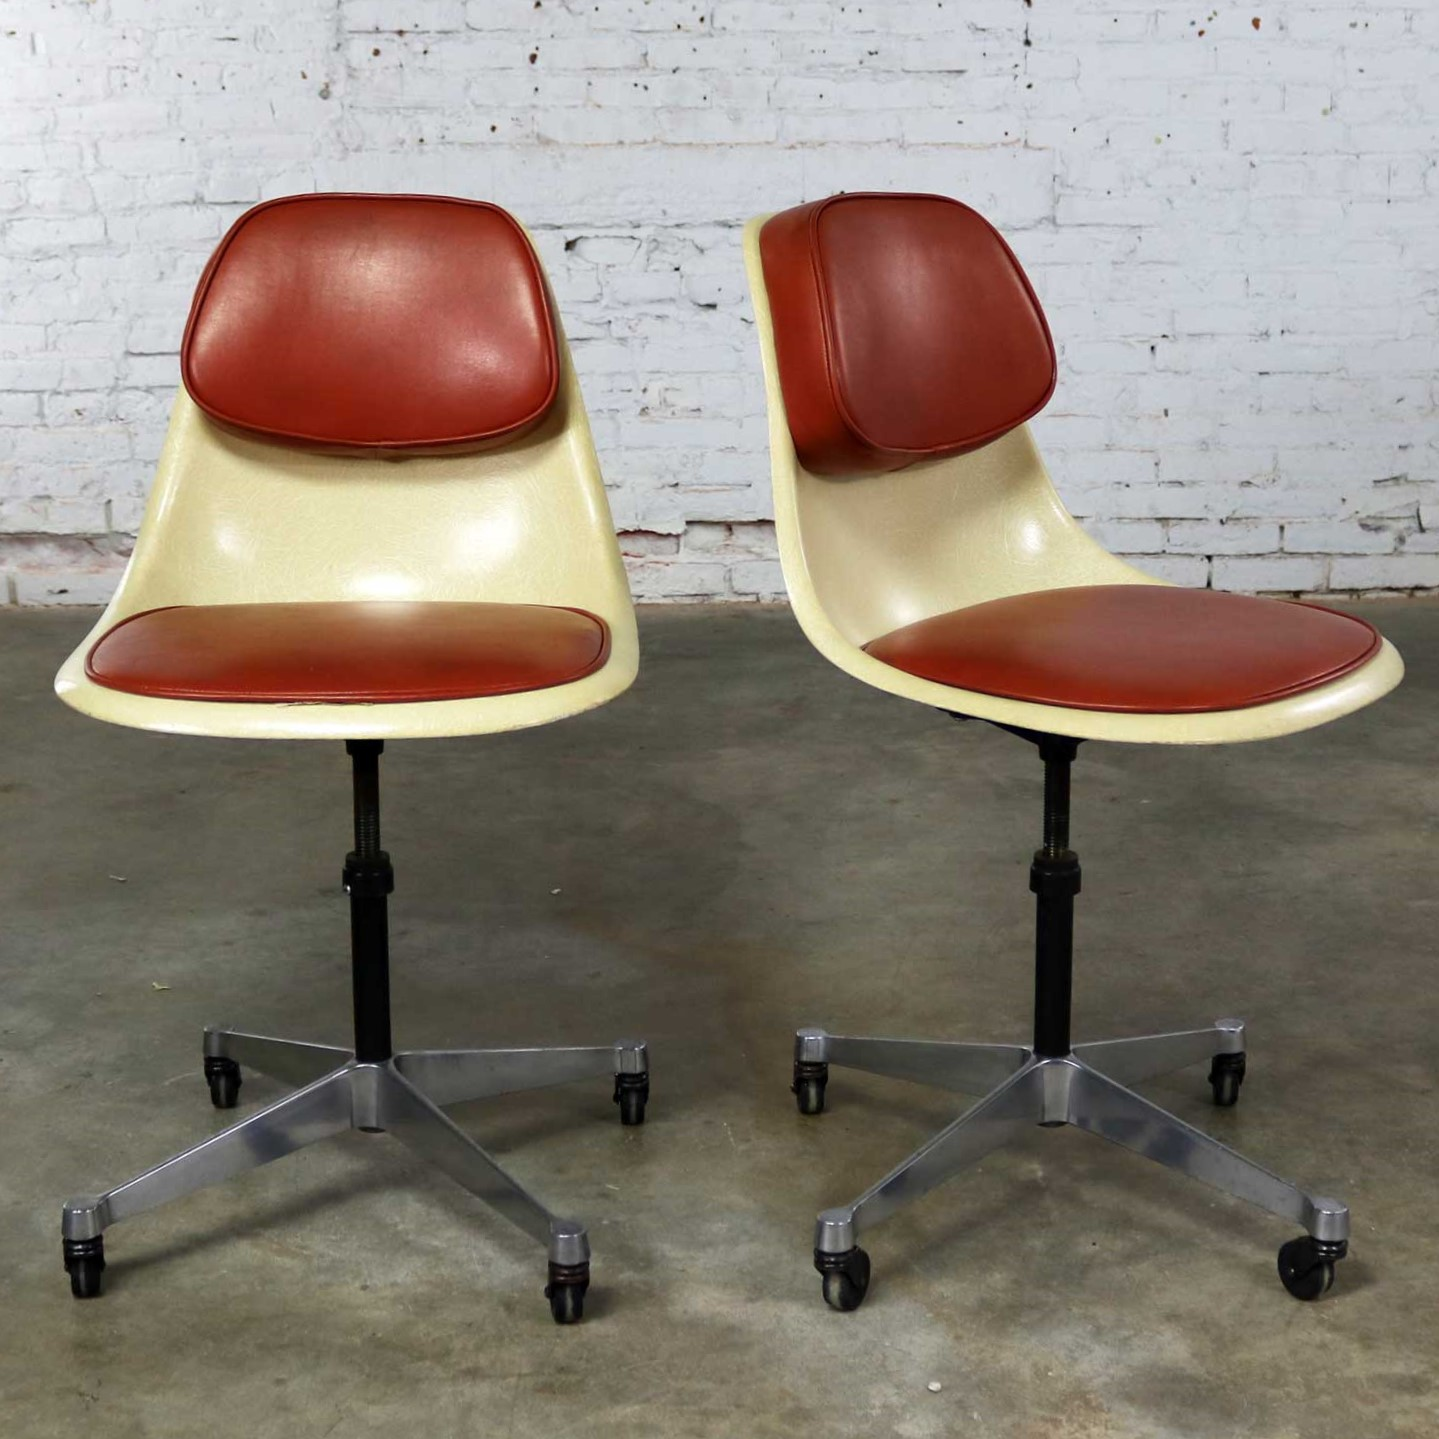 Eames Herman Miller PSCC-A-4 Pivoting Task Shell Chair